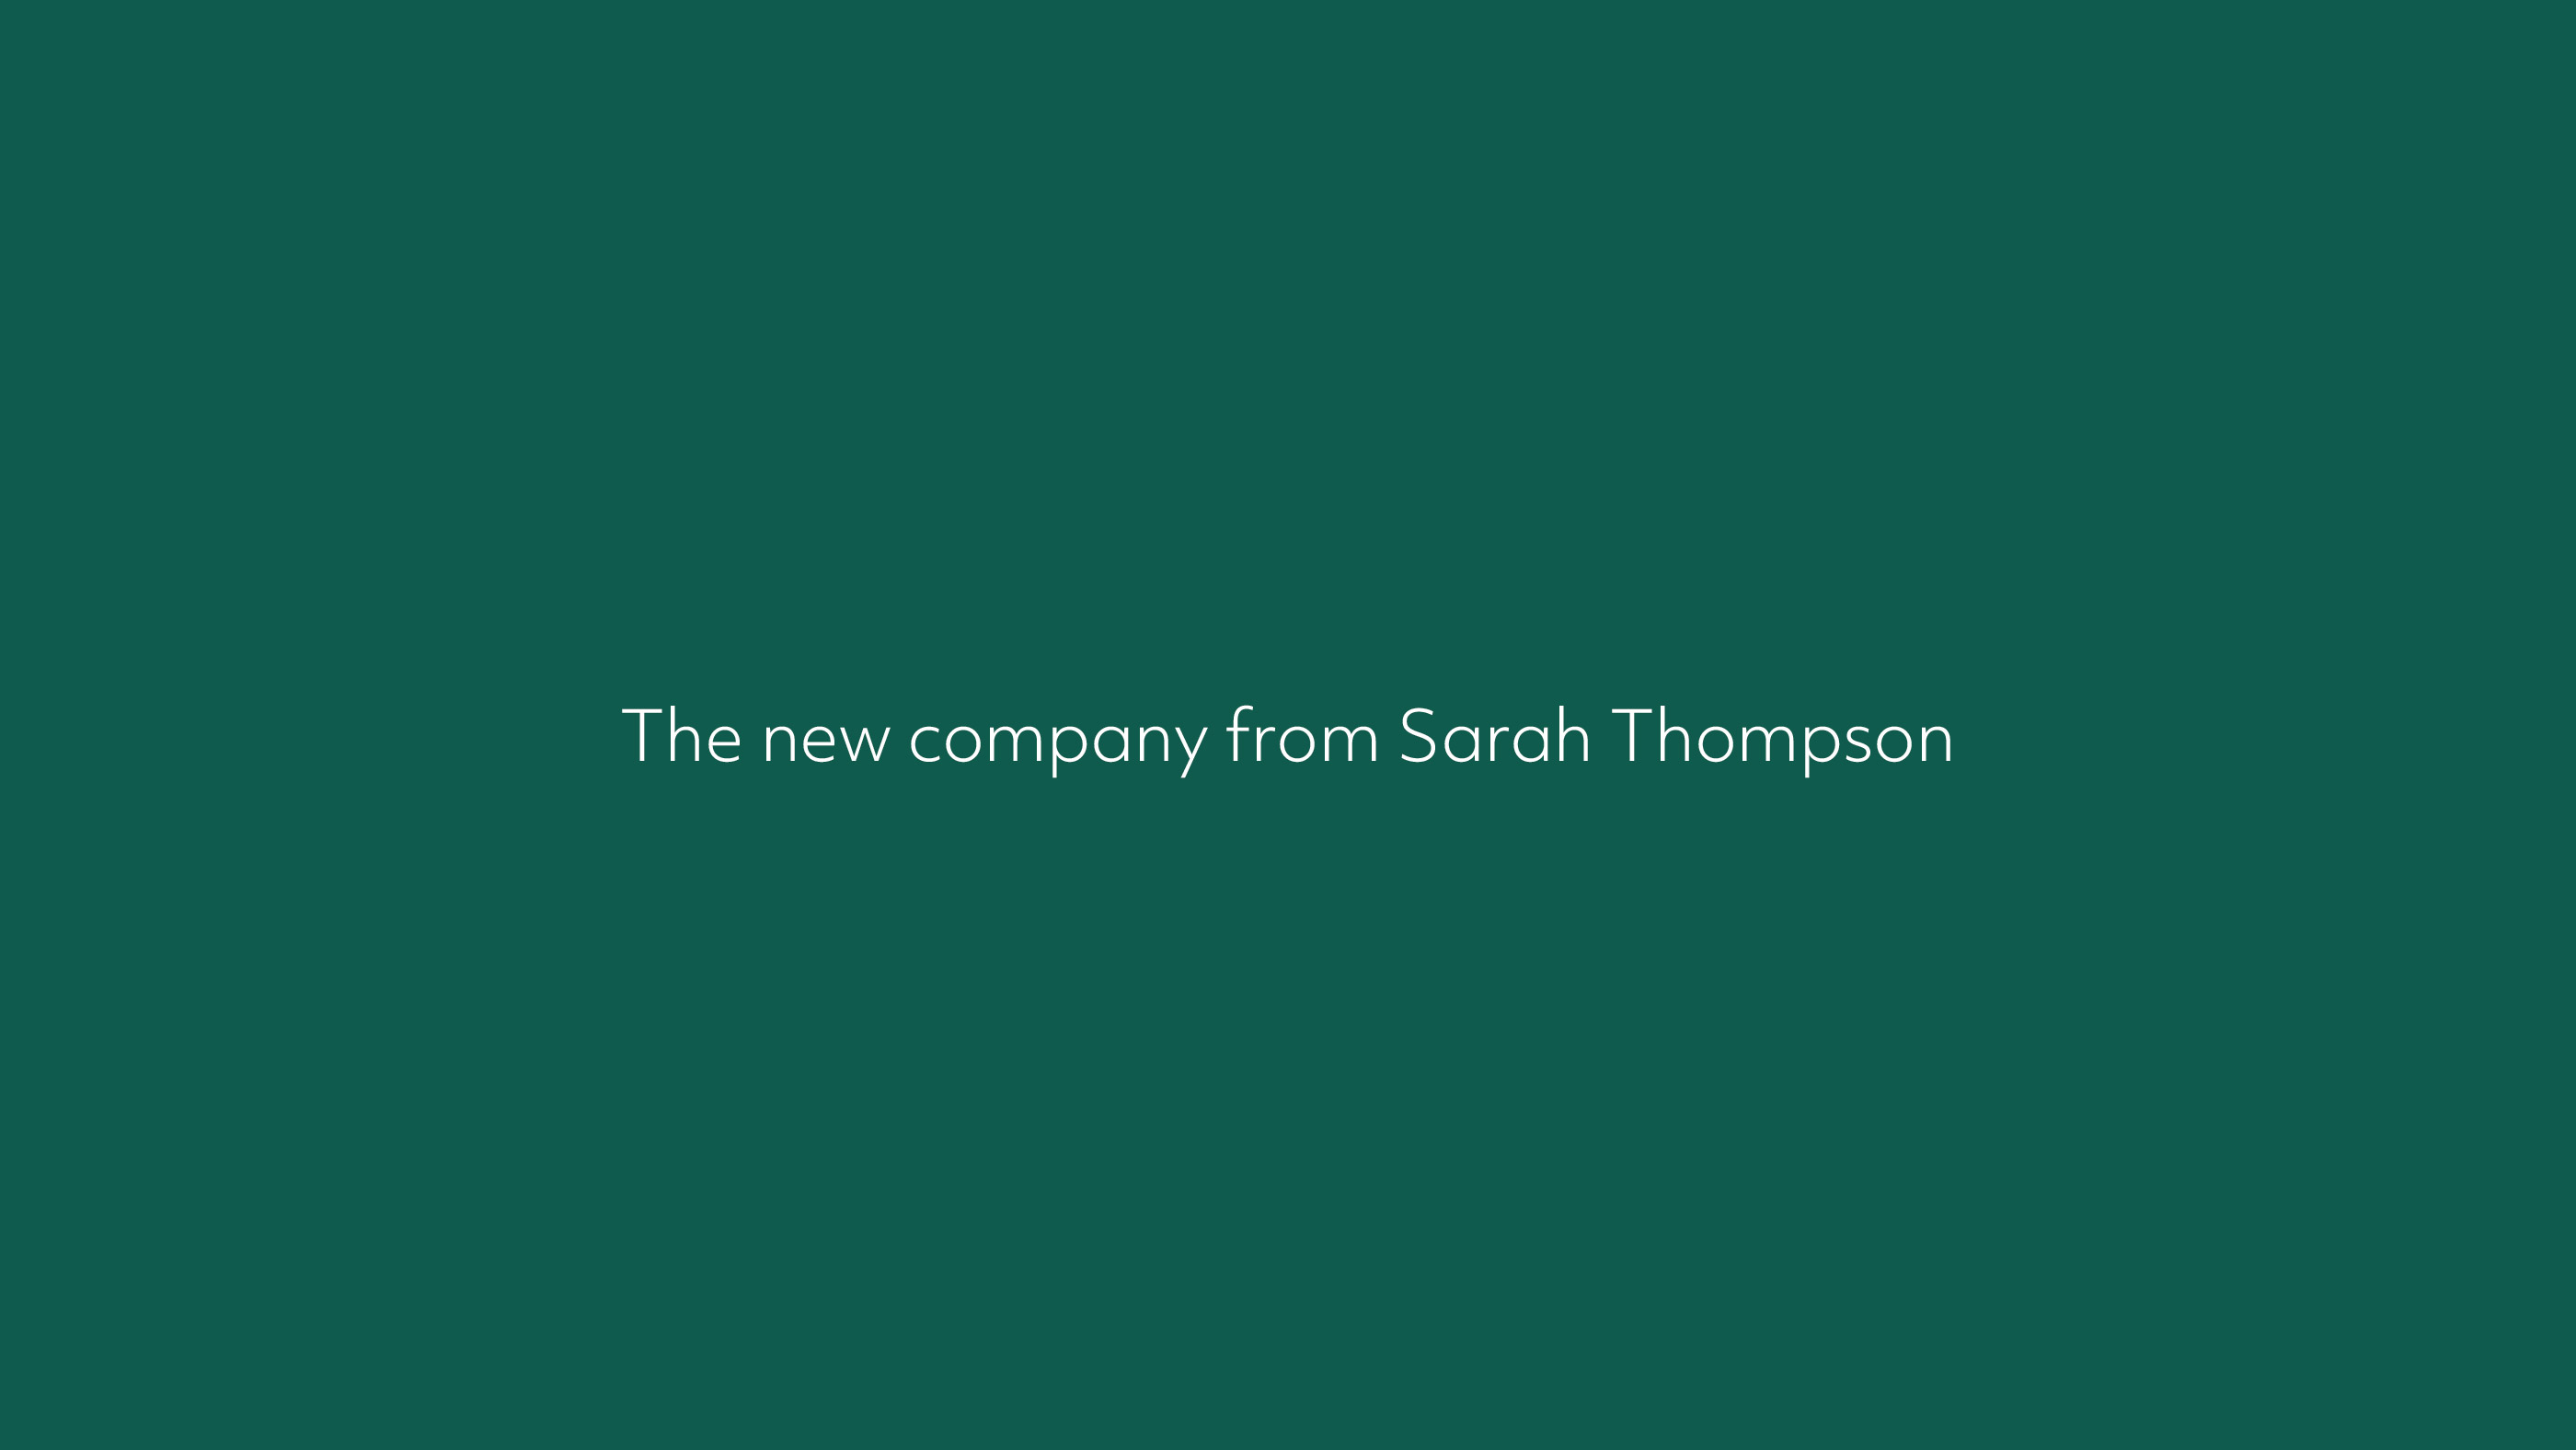 The new company from Sarah Thompson